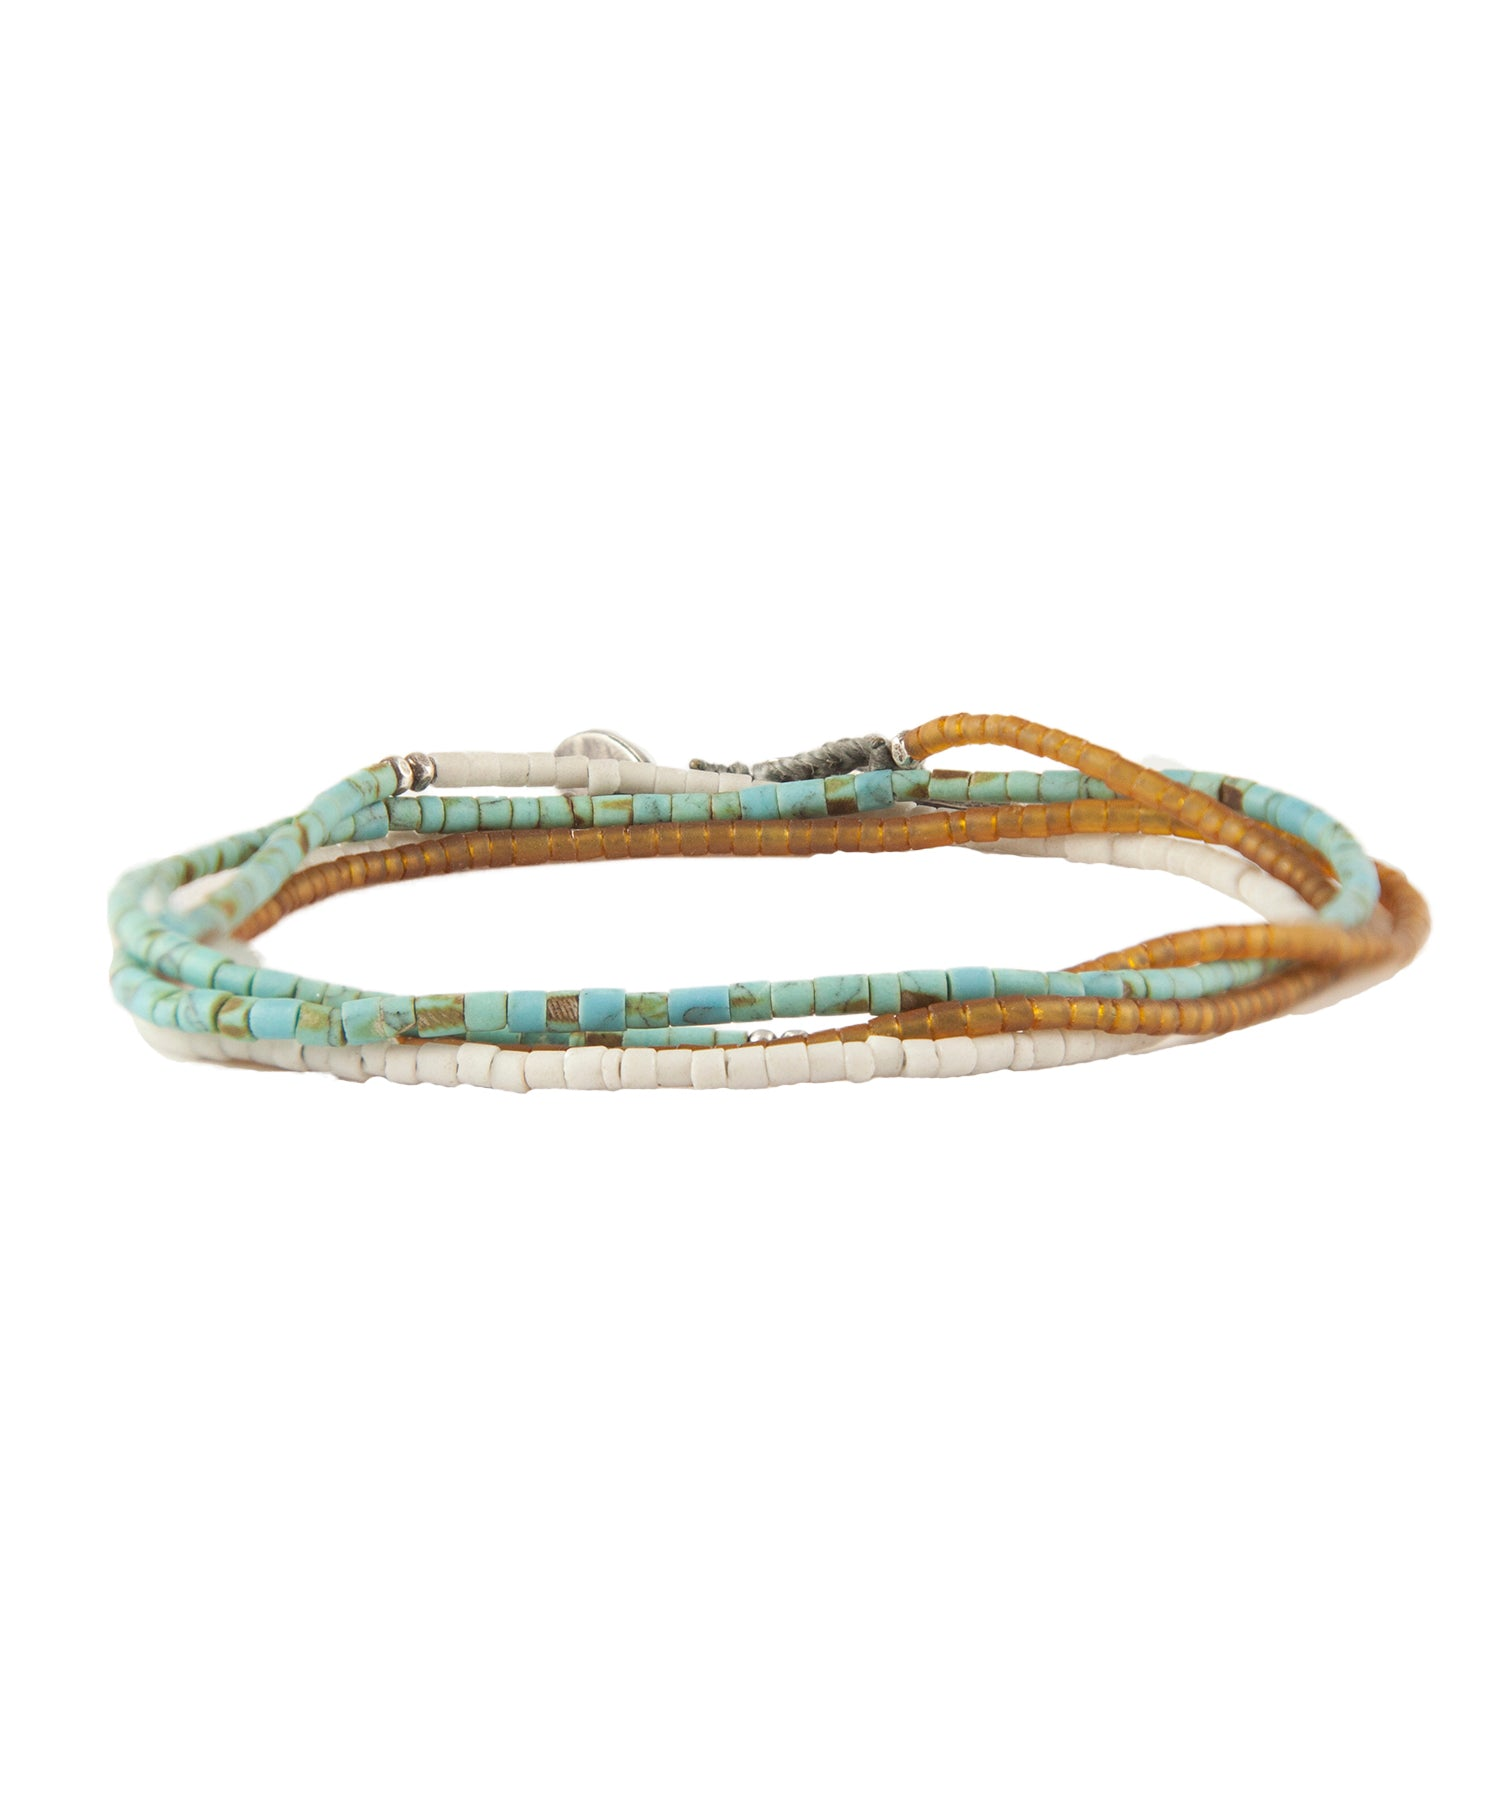 M. Cohen Mini Bead Horizon Necklace/Wrap Bracelet